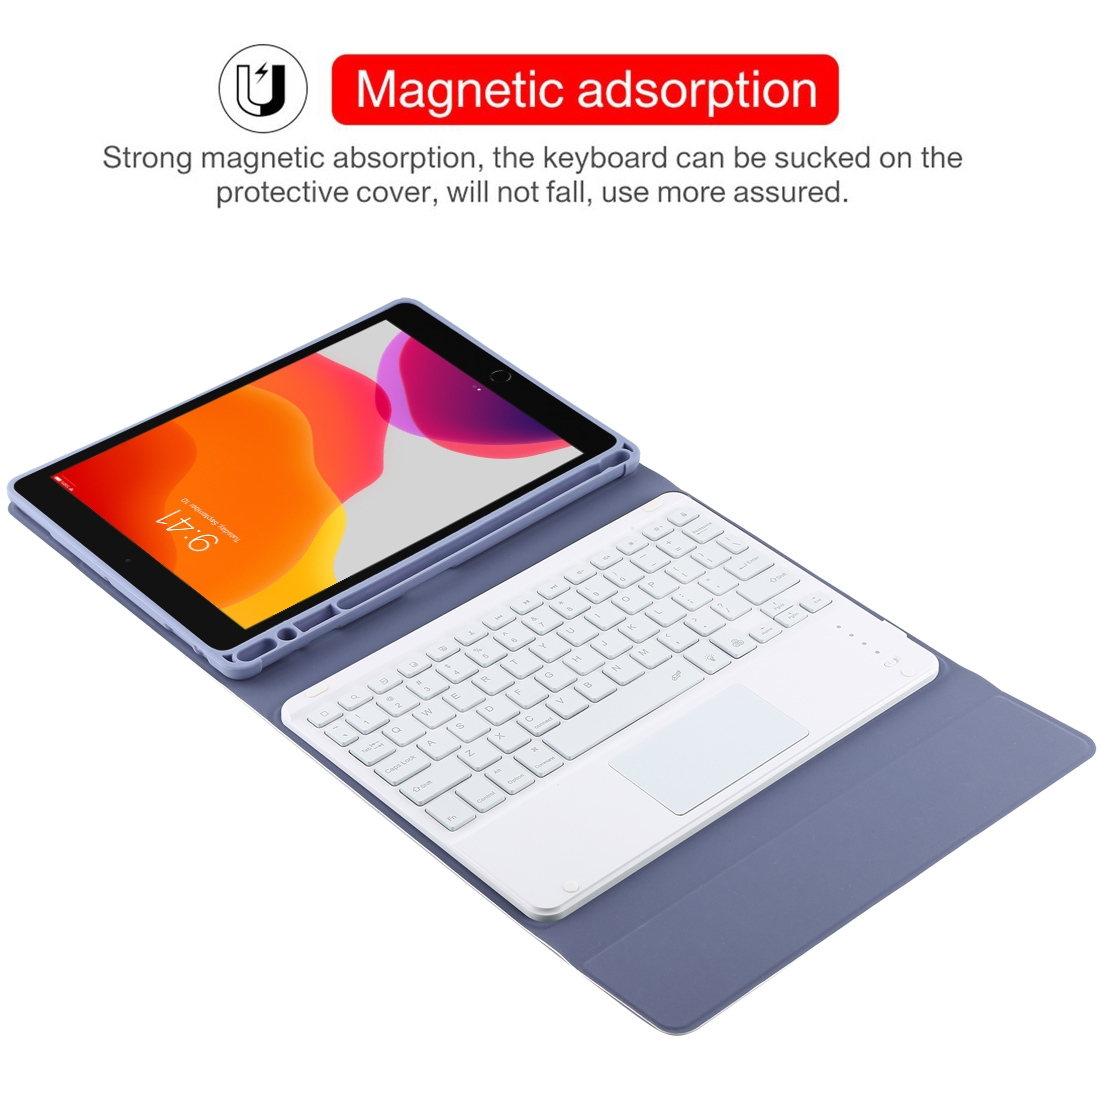 iPad Air Case With Keyboard For iPad 10.2/Air (2019) Leather Case With Backlit Keyboard (Purple)